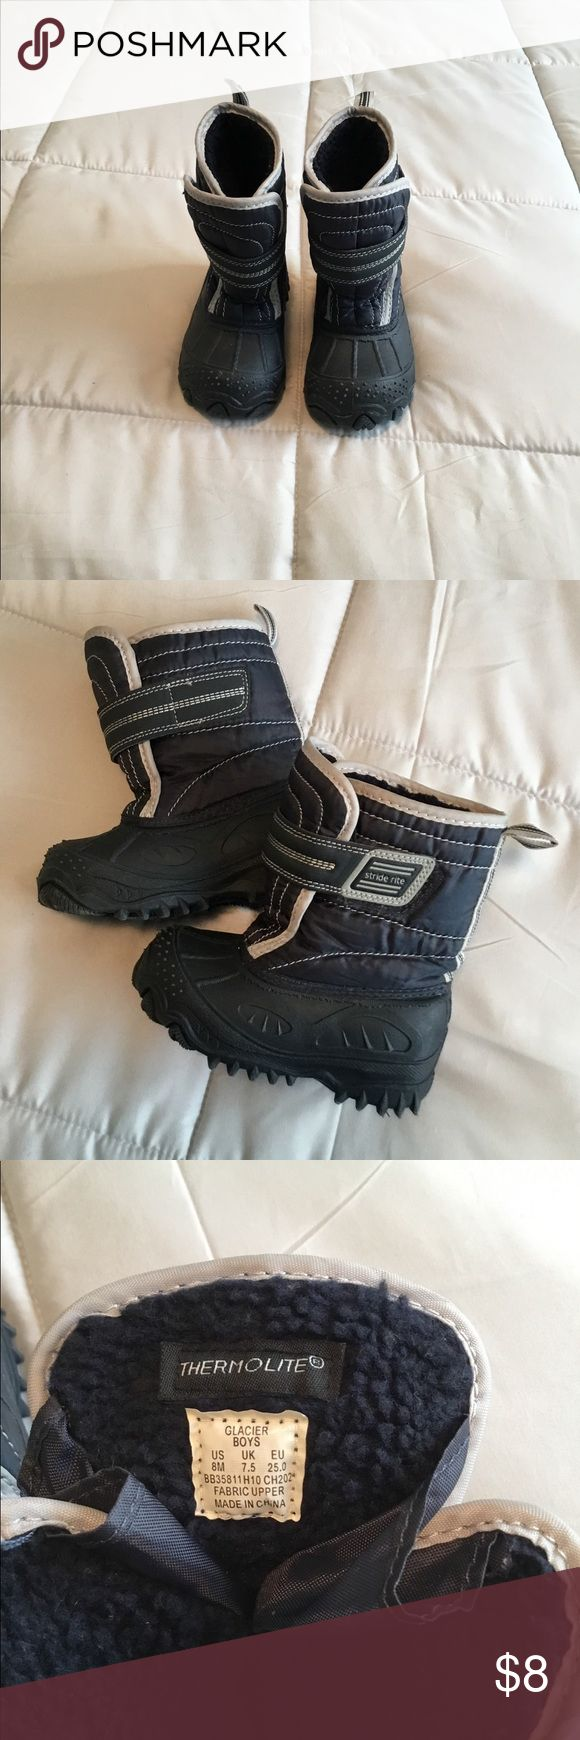 StrideRite boys snow boots StrideRite boys snow boots size 4. Excellent used condition, perfect to keep his feet nice and warm❄️❄️❄️ Stride Rite Shoes Rain & Snow Boots